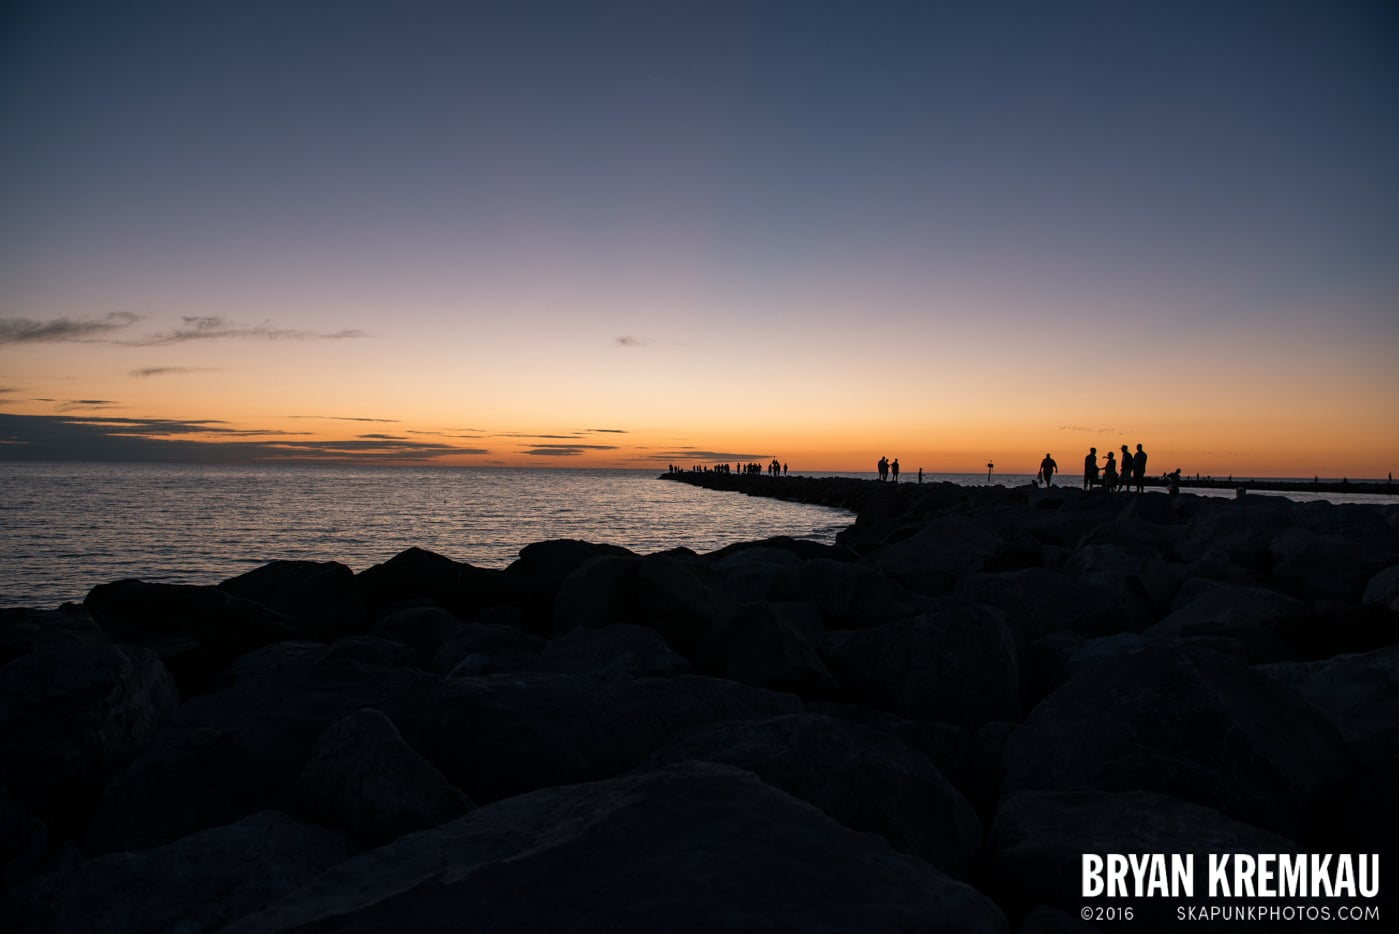 Sunsets, Astrophotography & Birds @ Venice, Florida - 10.25.14 - 11.5.14 (124)